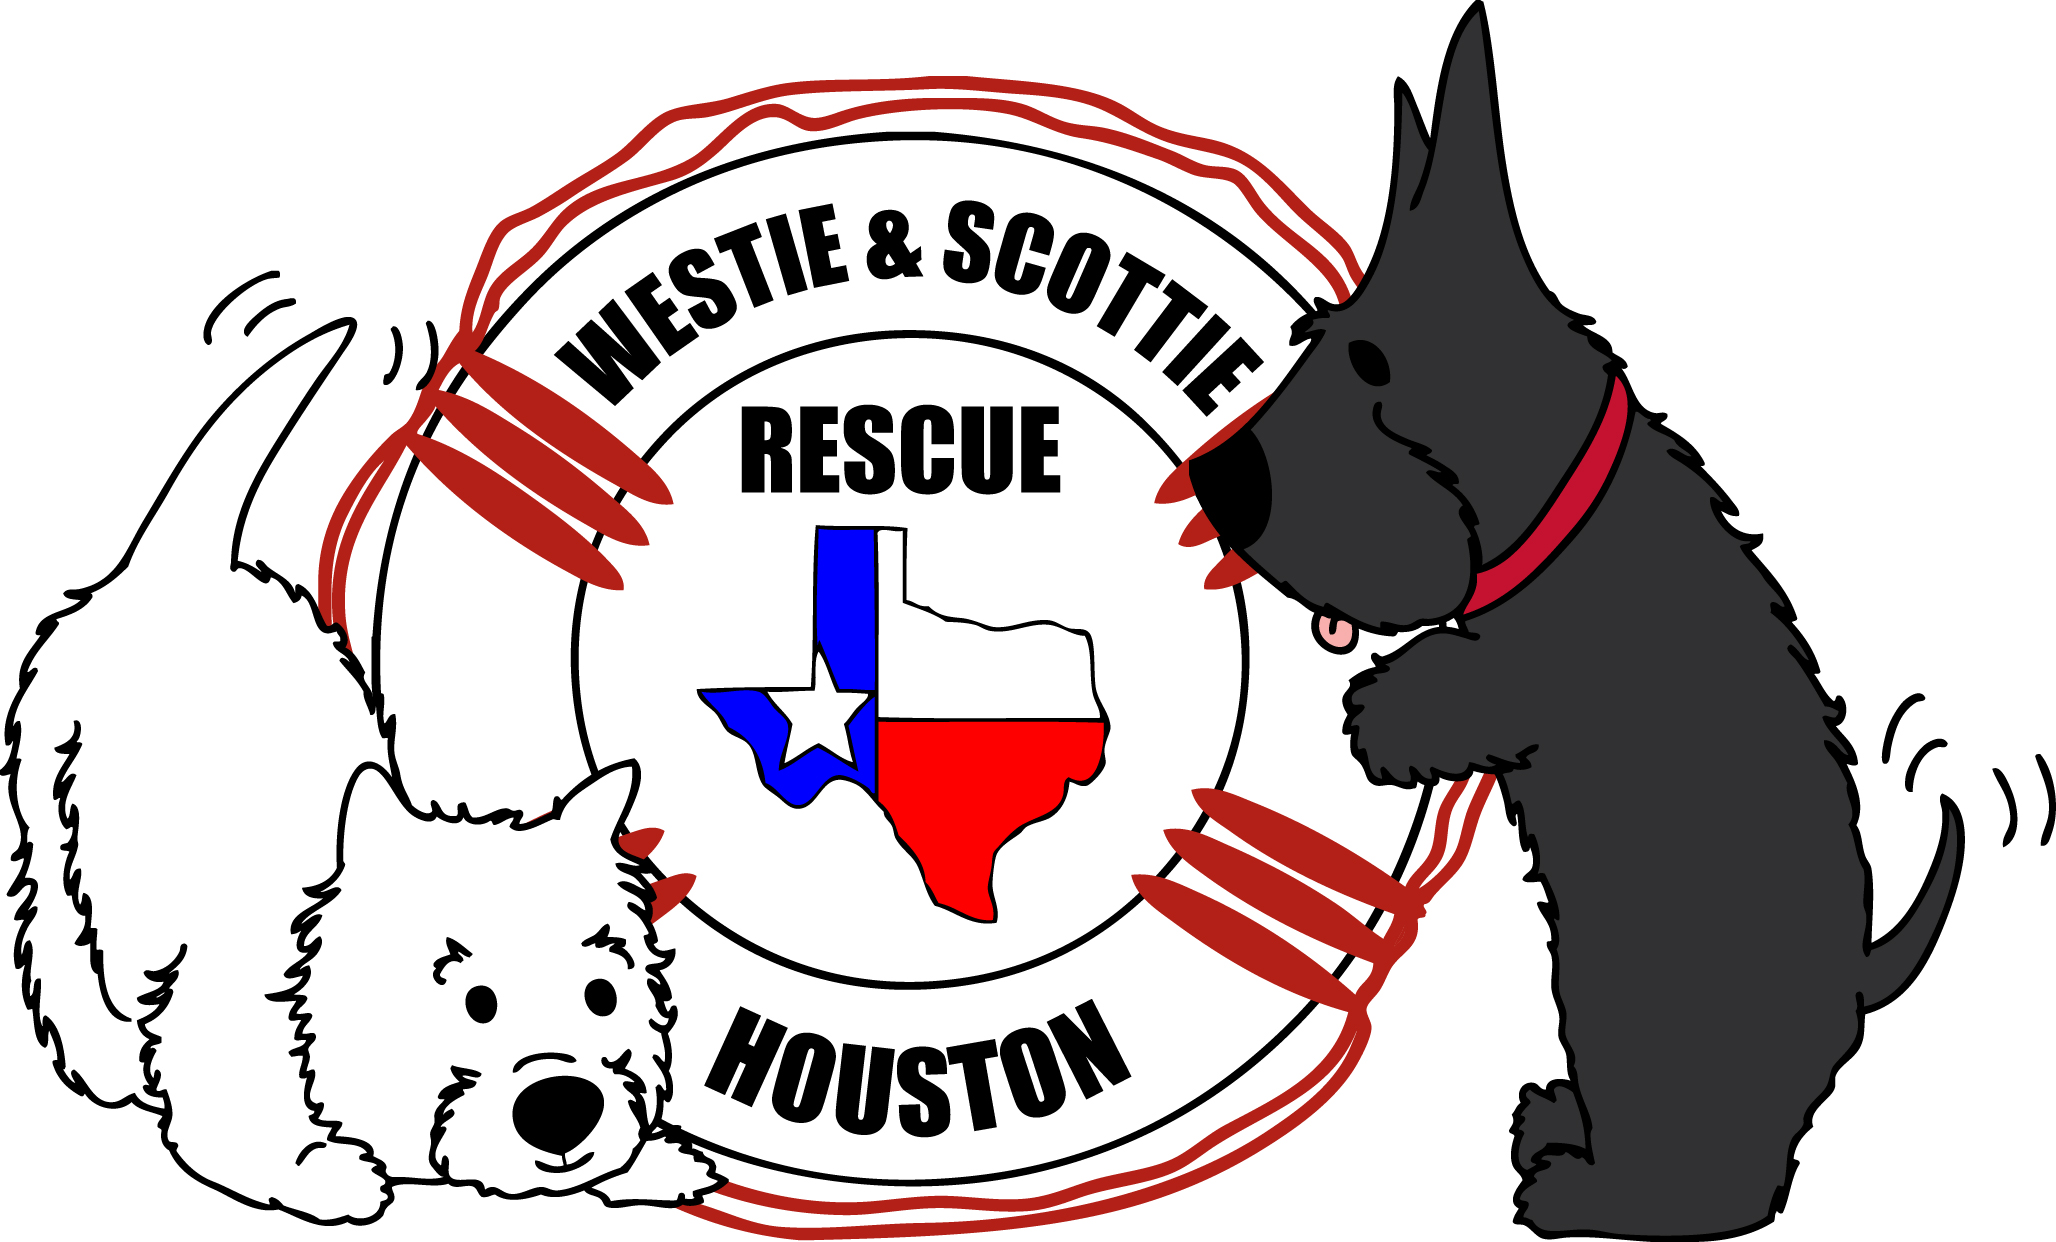 Westie & Scottie Rescue Houston